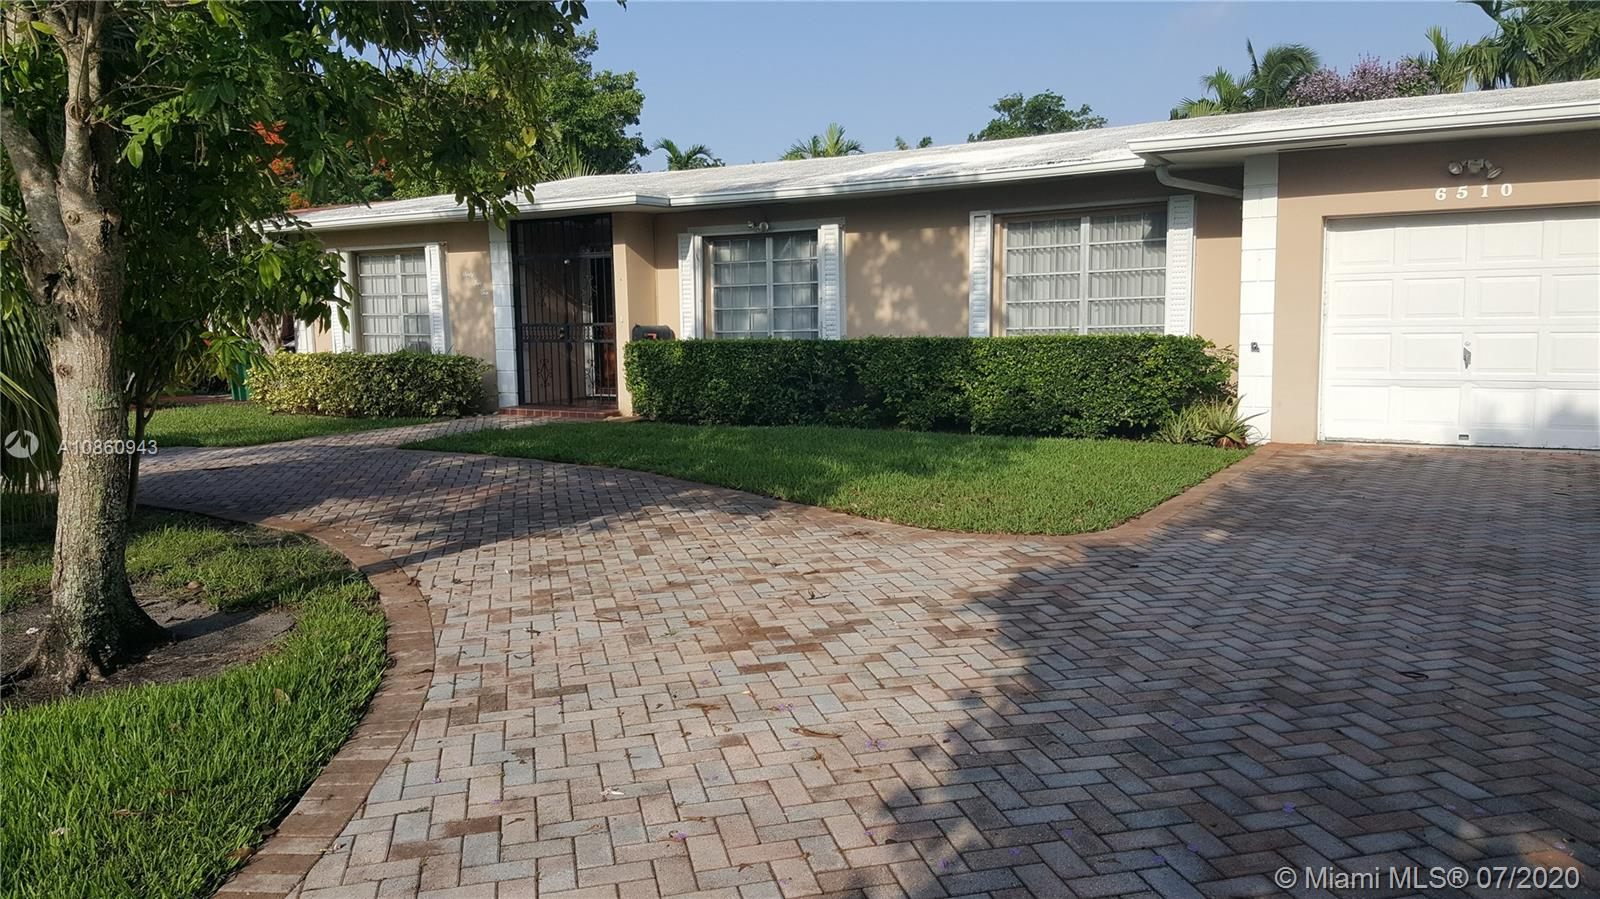 6510 SW 93rd Ave  For Sale A10860943, FL